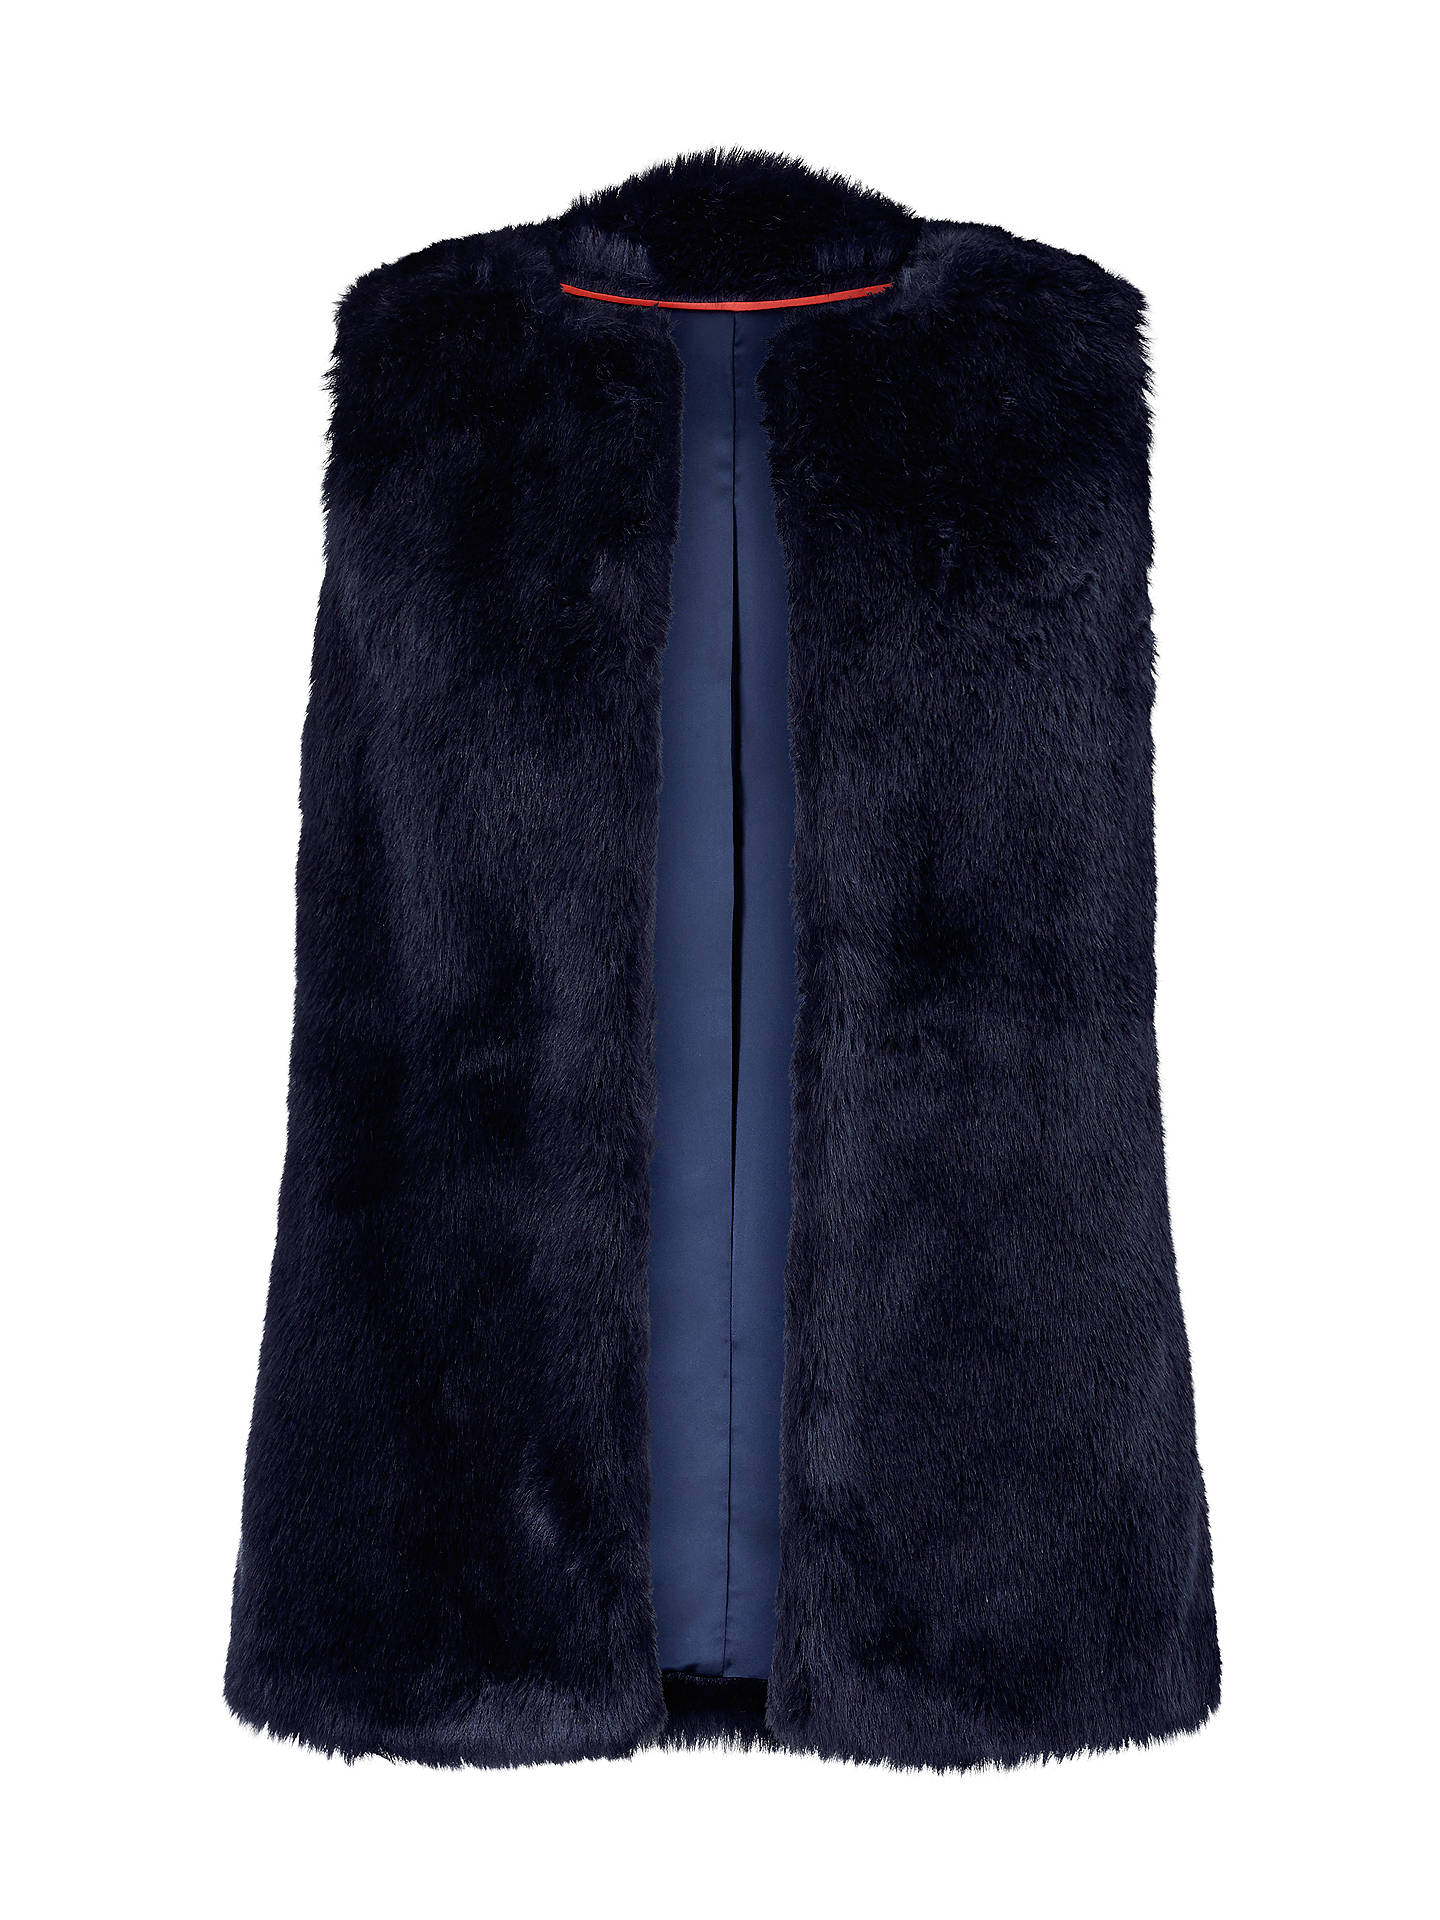 BuyBoden Helston Faux Fur Gilet, Navy Fur, 14 Online at johnlewis.com